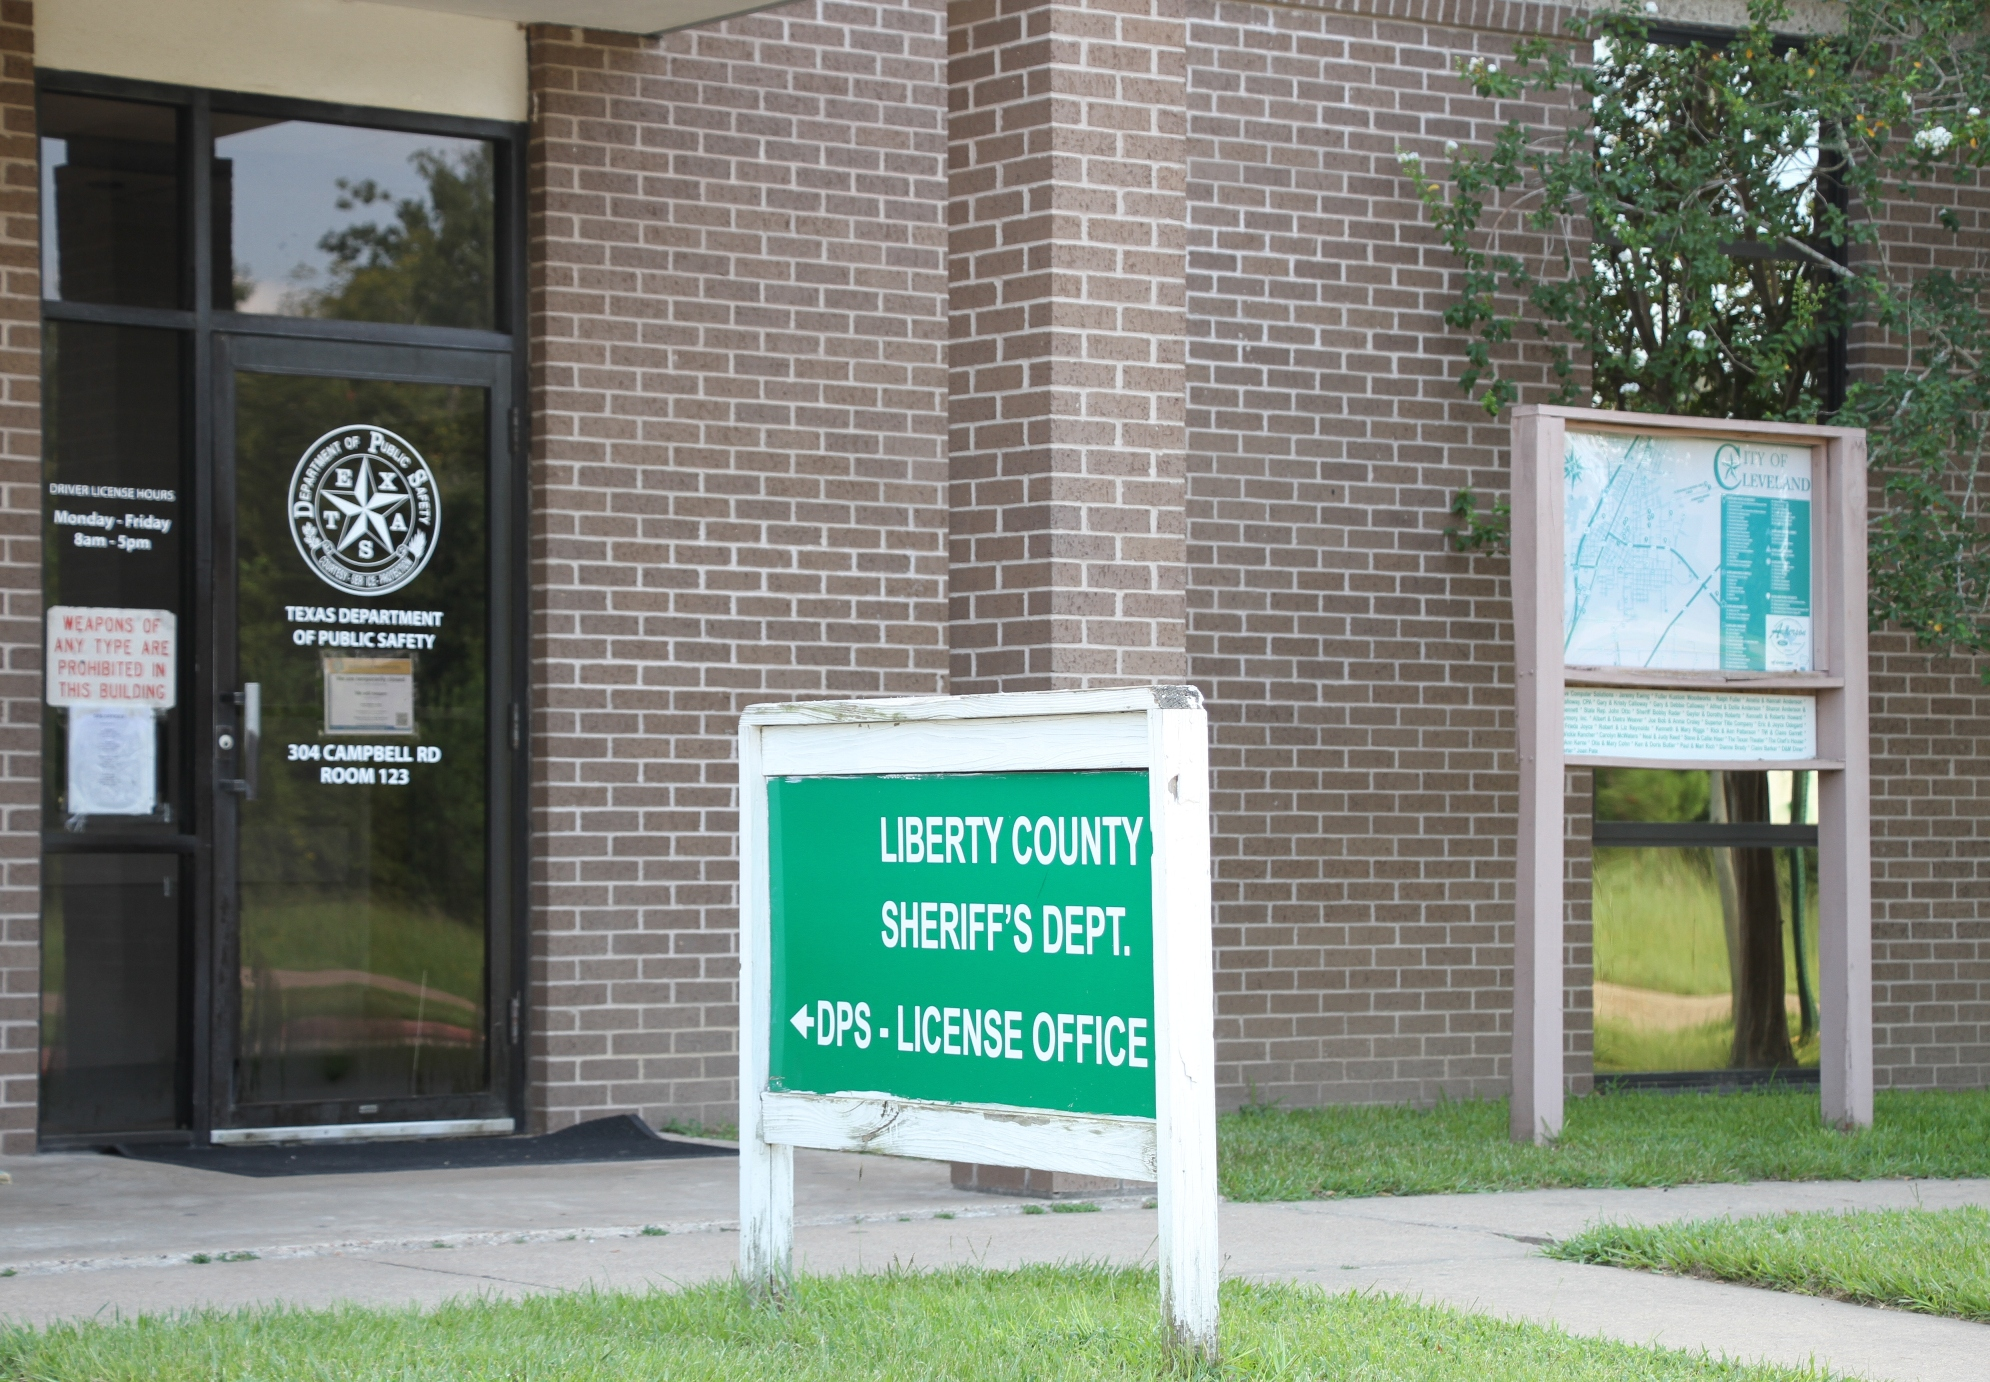 Saturday Appointments Still Available At Texas Driver S License Offices Bluebonnet News